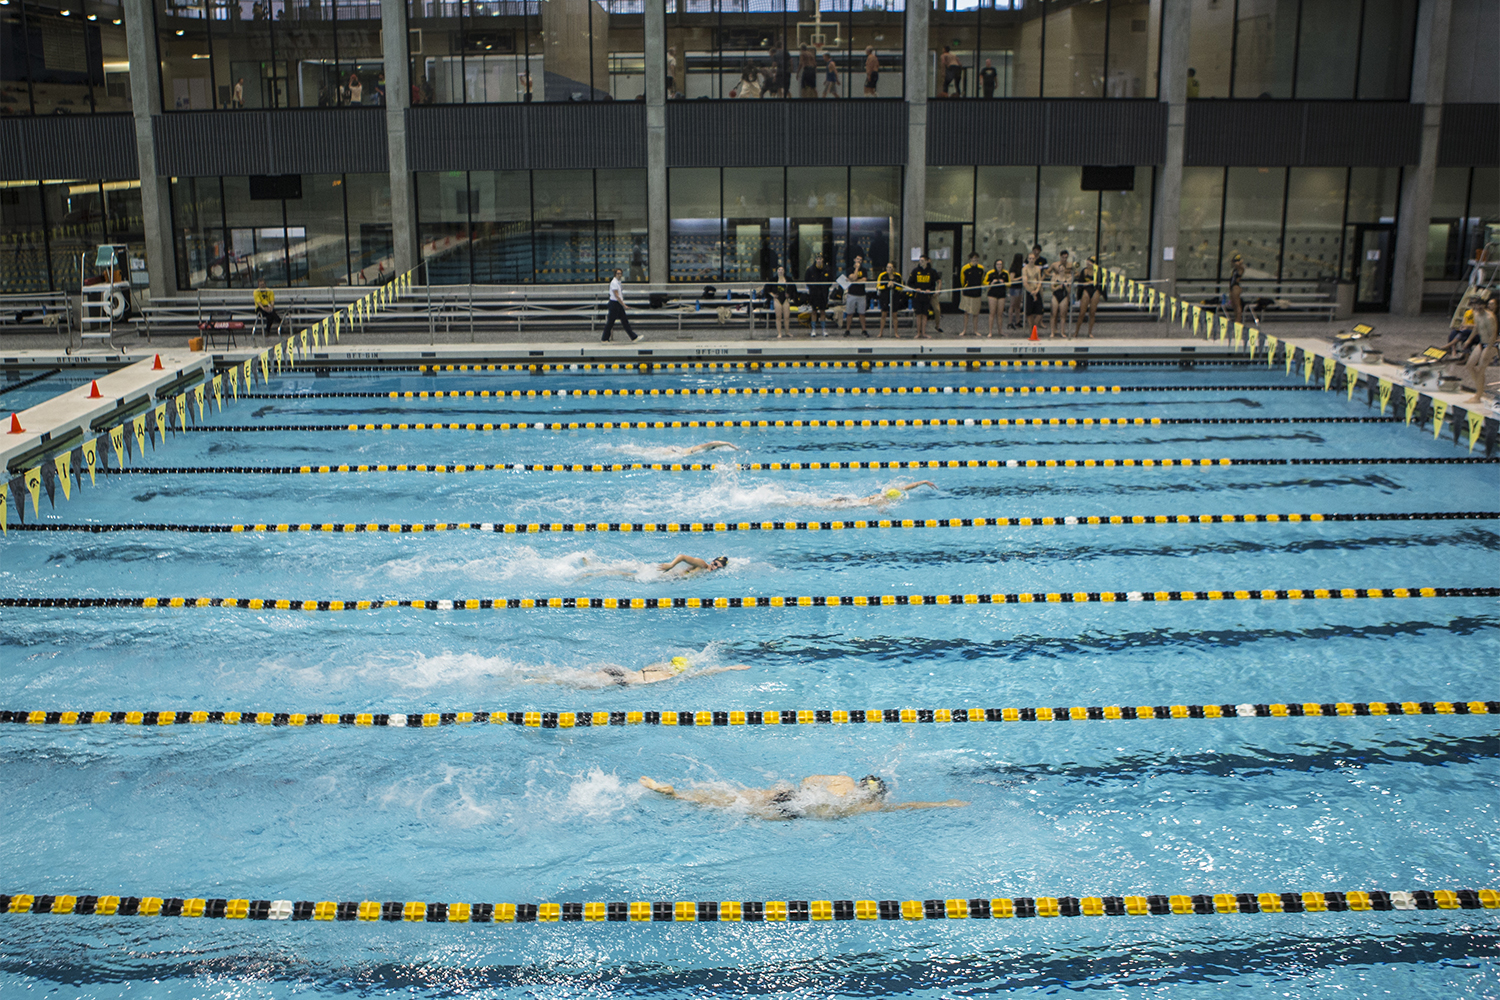 Swimmers+compete+in+the+200+meter+Freestyle+during+the+Iowa+Swimming+and+Diving+Intrasquad+Meet+at+the+Campus+Recreation+and+Wellness+Center+on+Saturday%2C+September+29%2C+2018.+